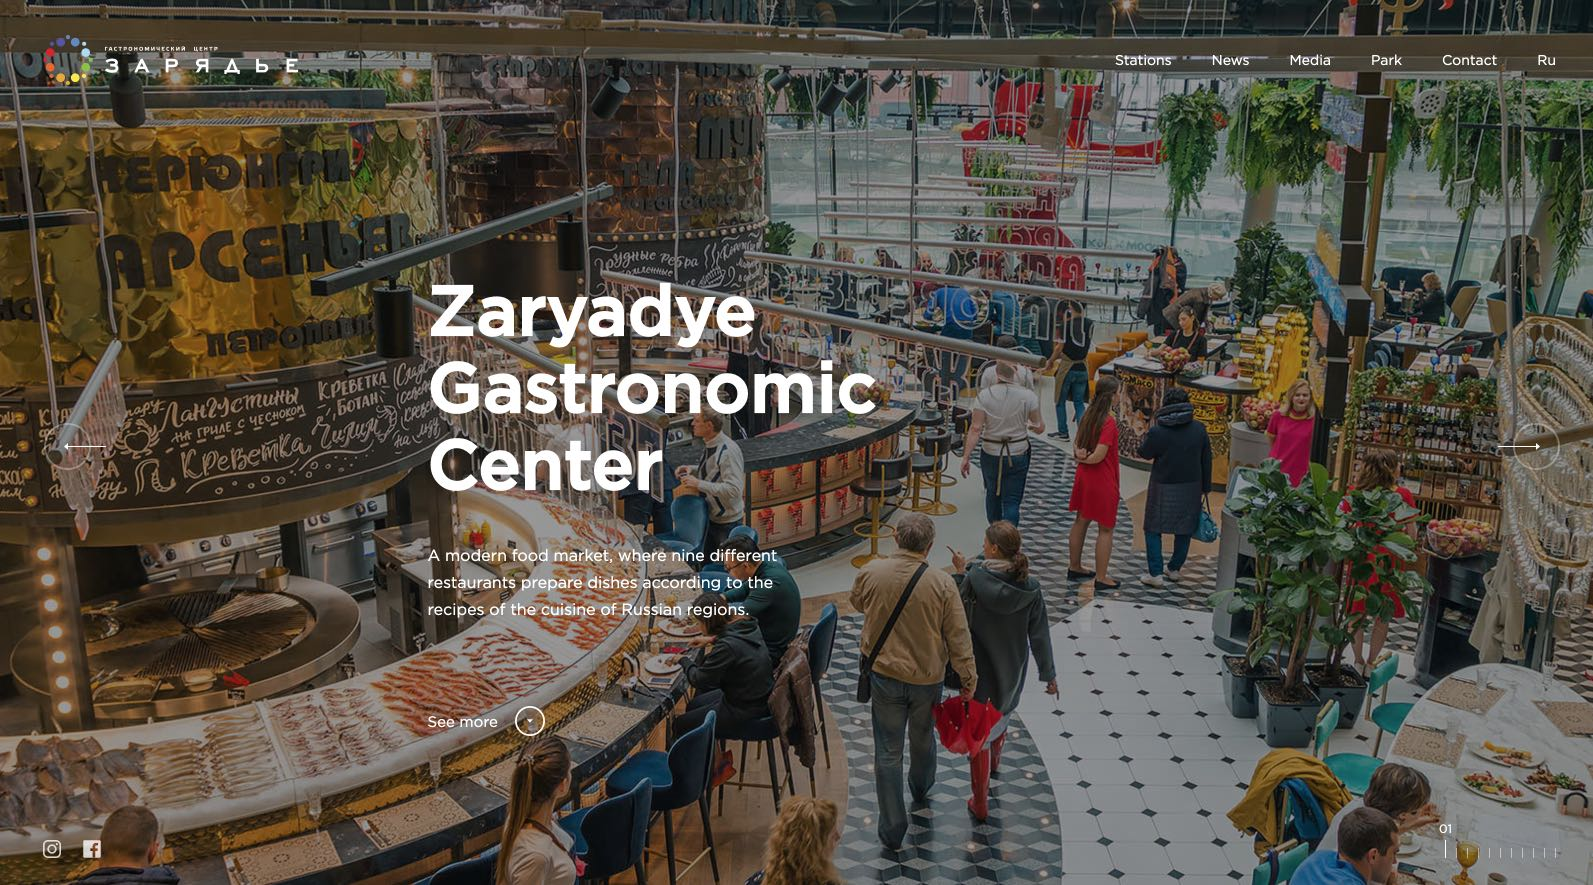 Zaryadye Gastronomic Center